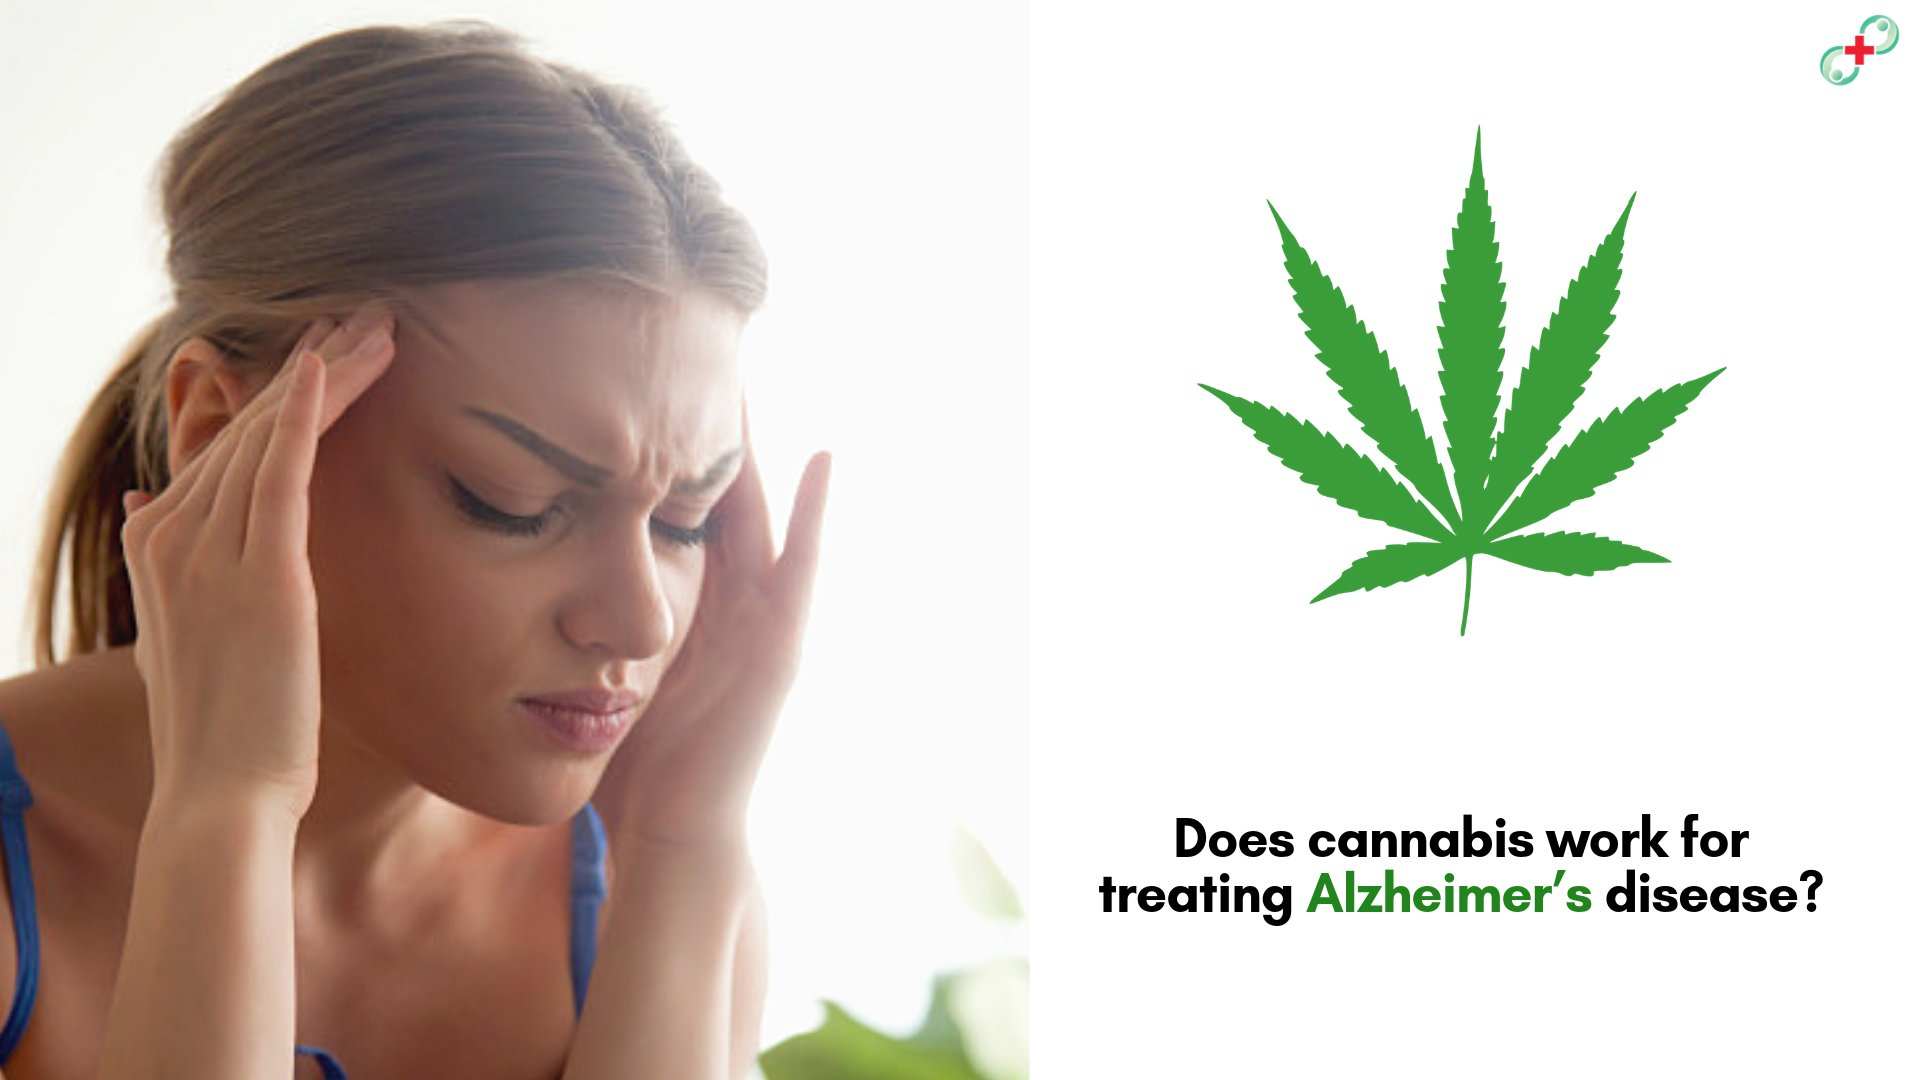 Does Cannabis Work for Treating Alzheimer's Disease